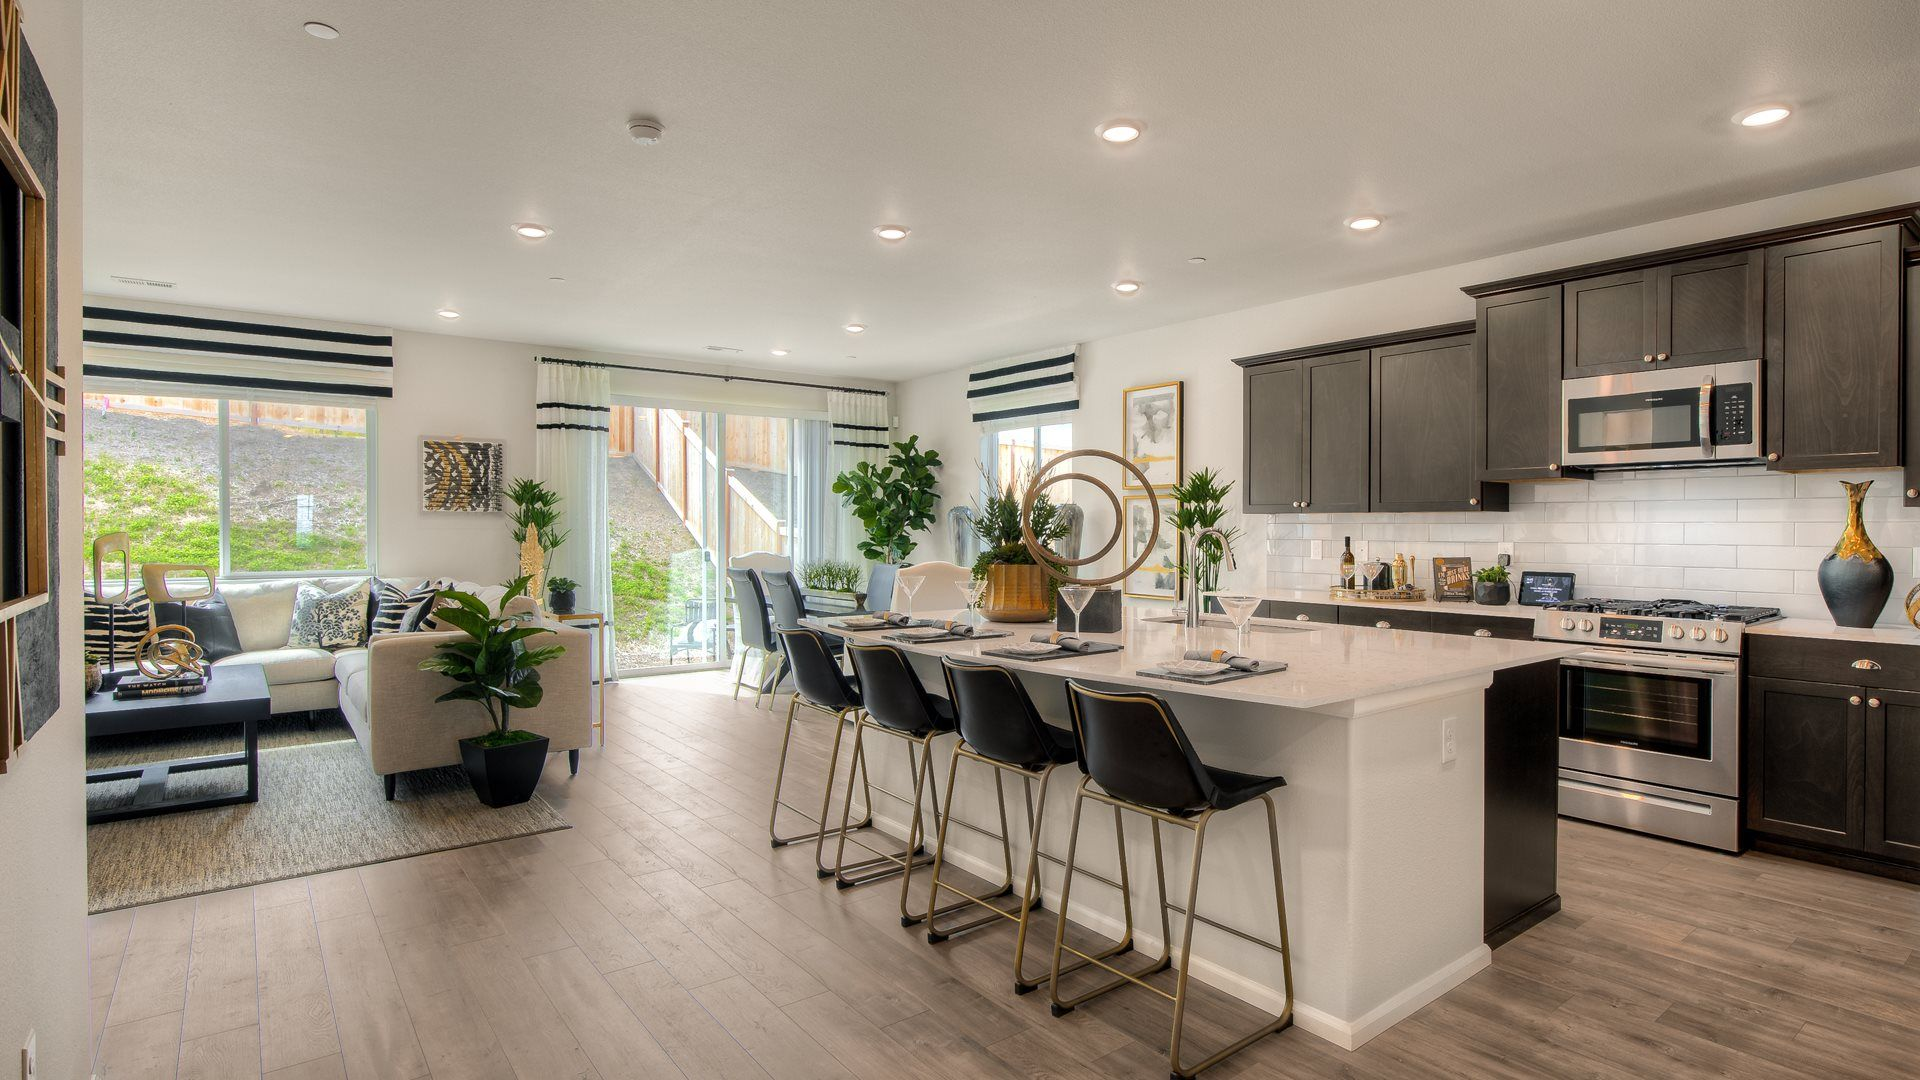 Kitchen featured in the Hamilton By Lennar in Olympia, WA